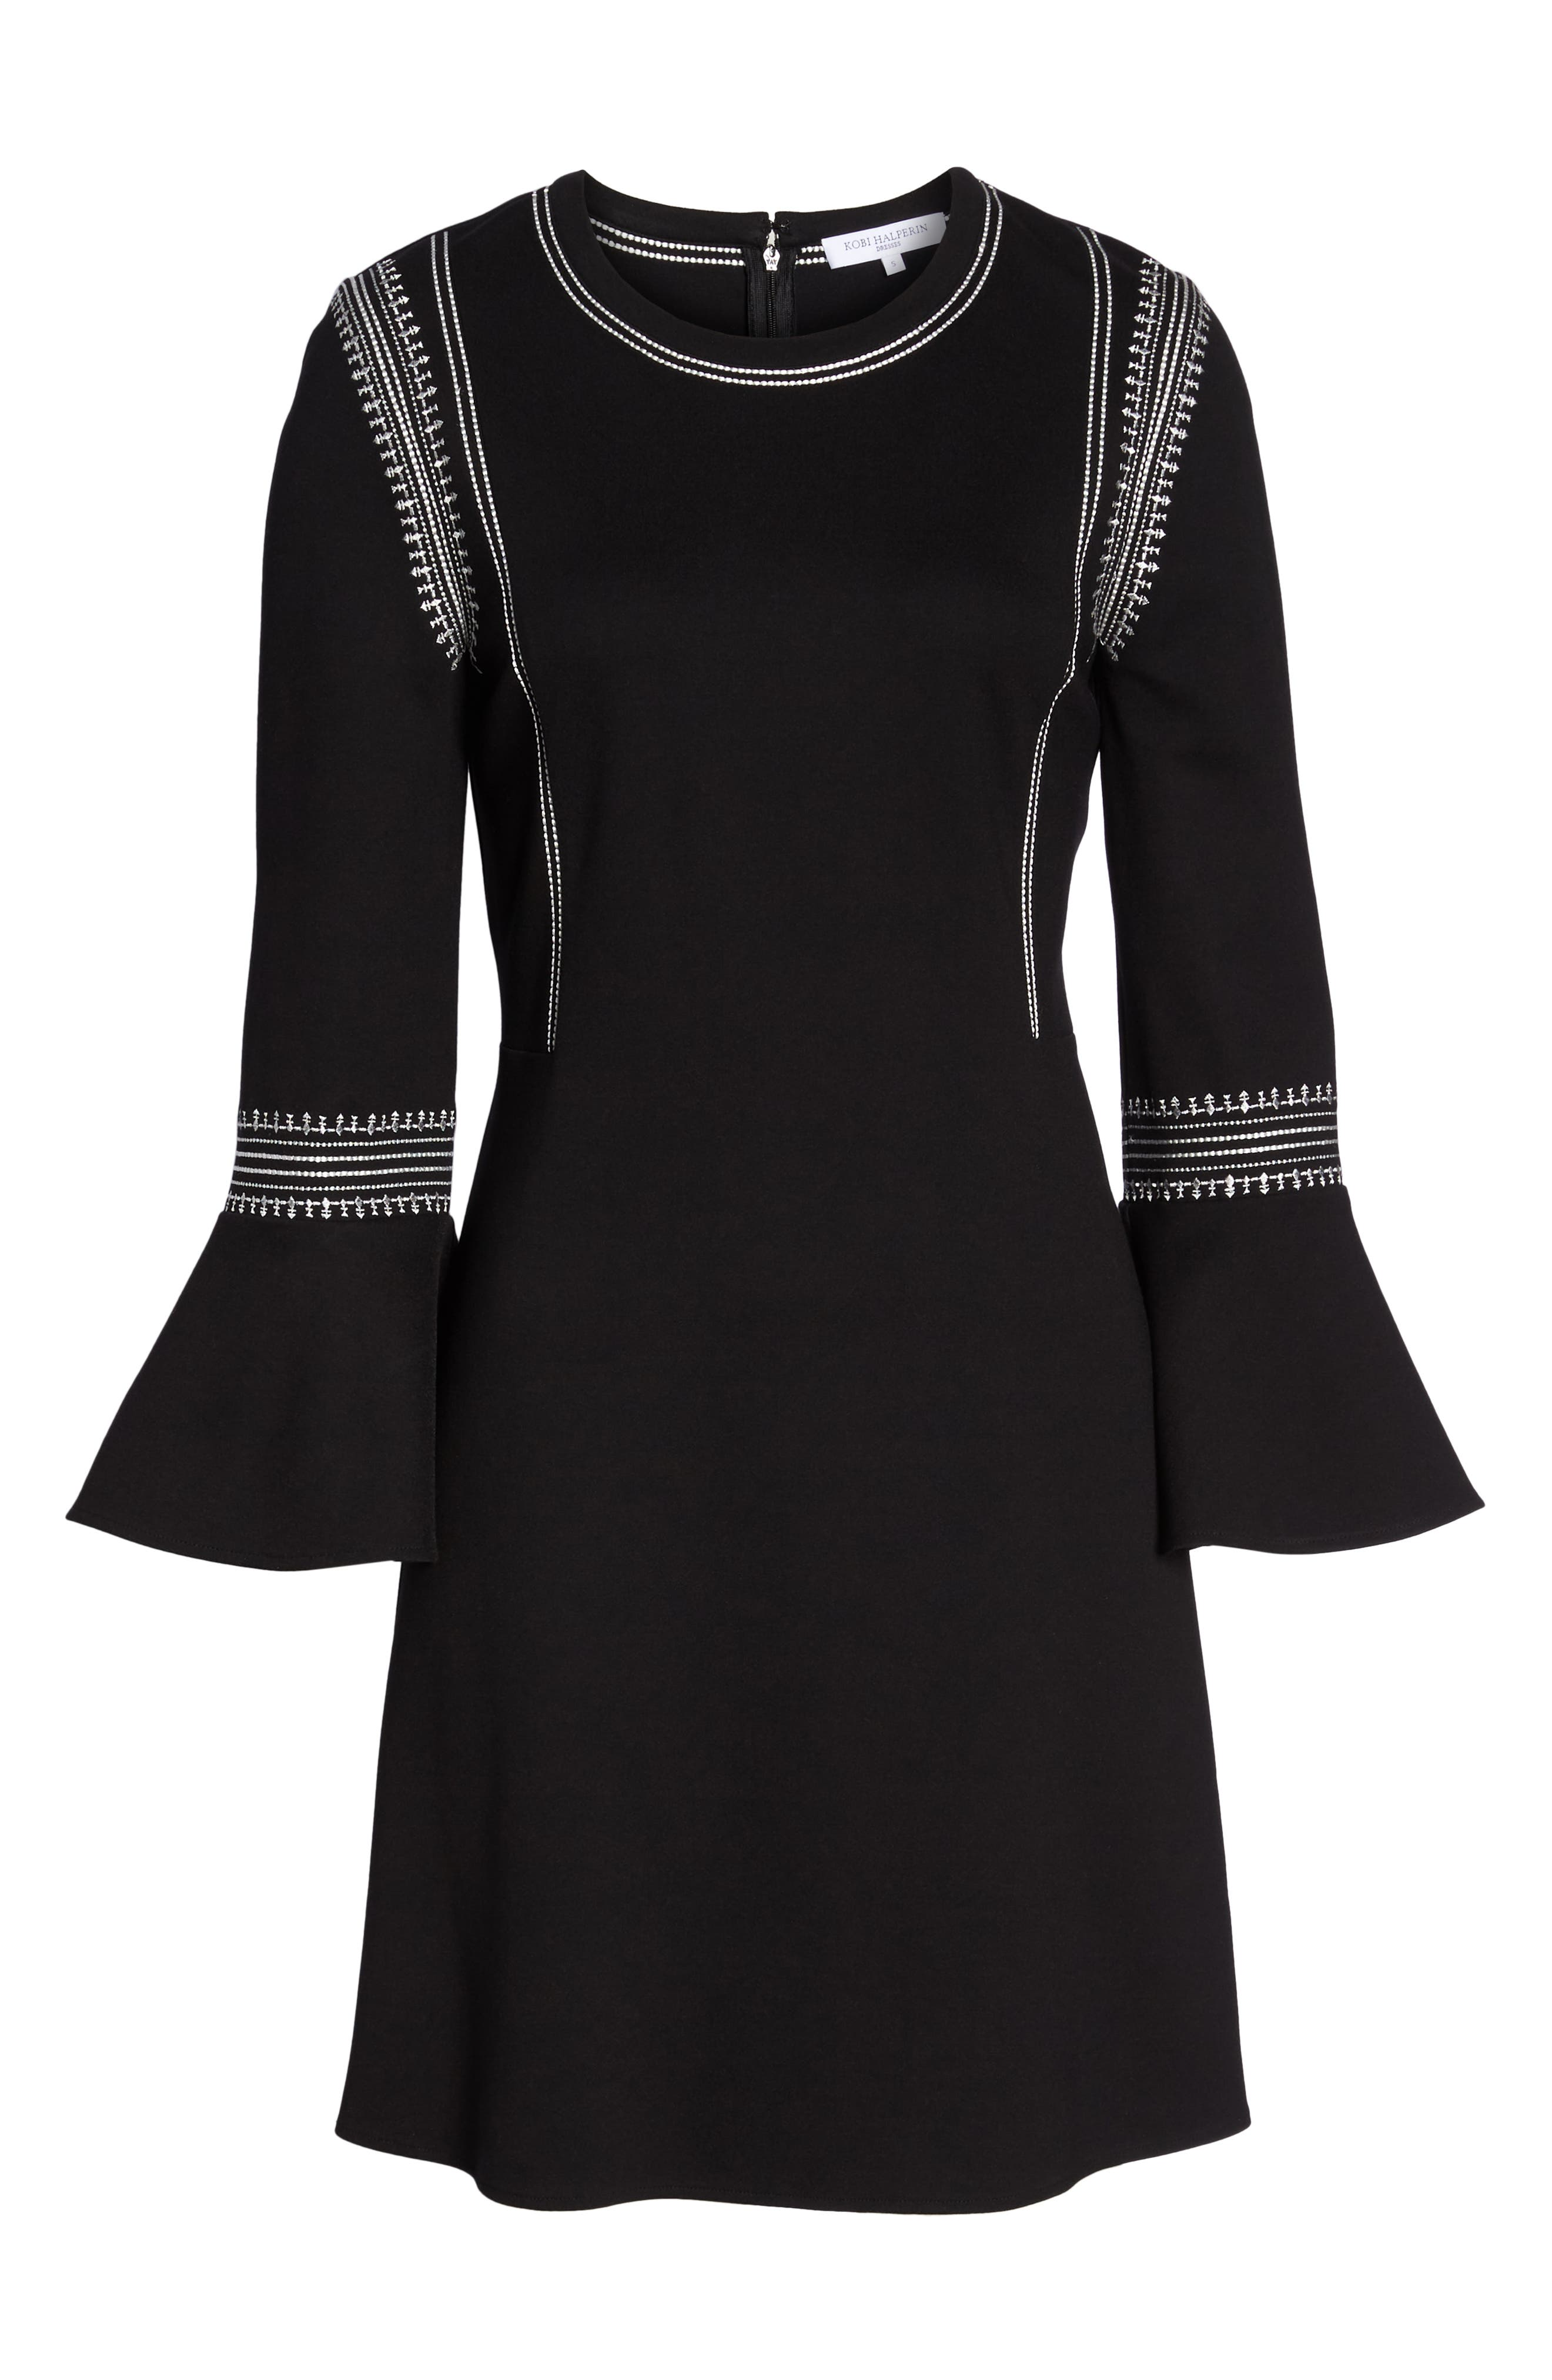 Danielle Embroidered Bell Sleeve Knit Dress,                             Alternate thumbnail 7, color,                             Black